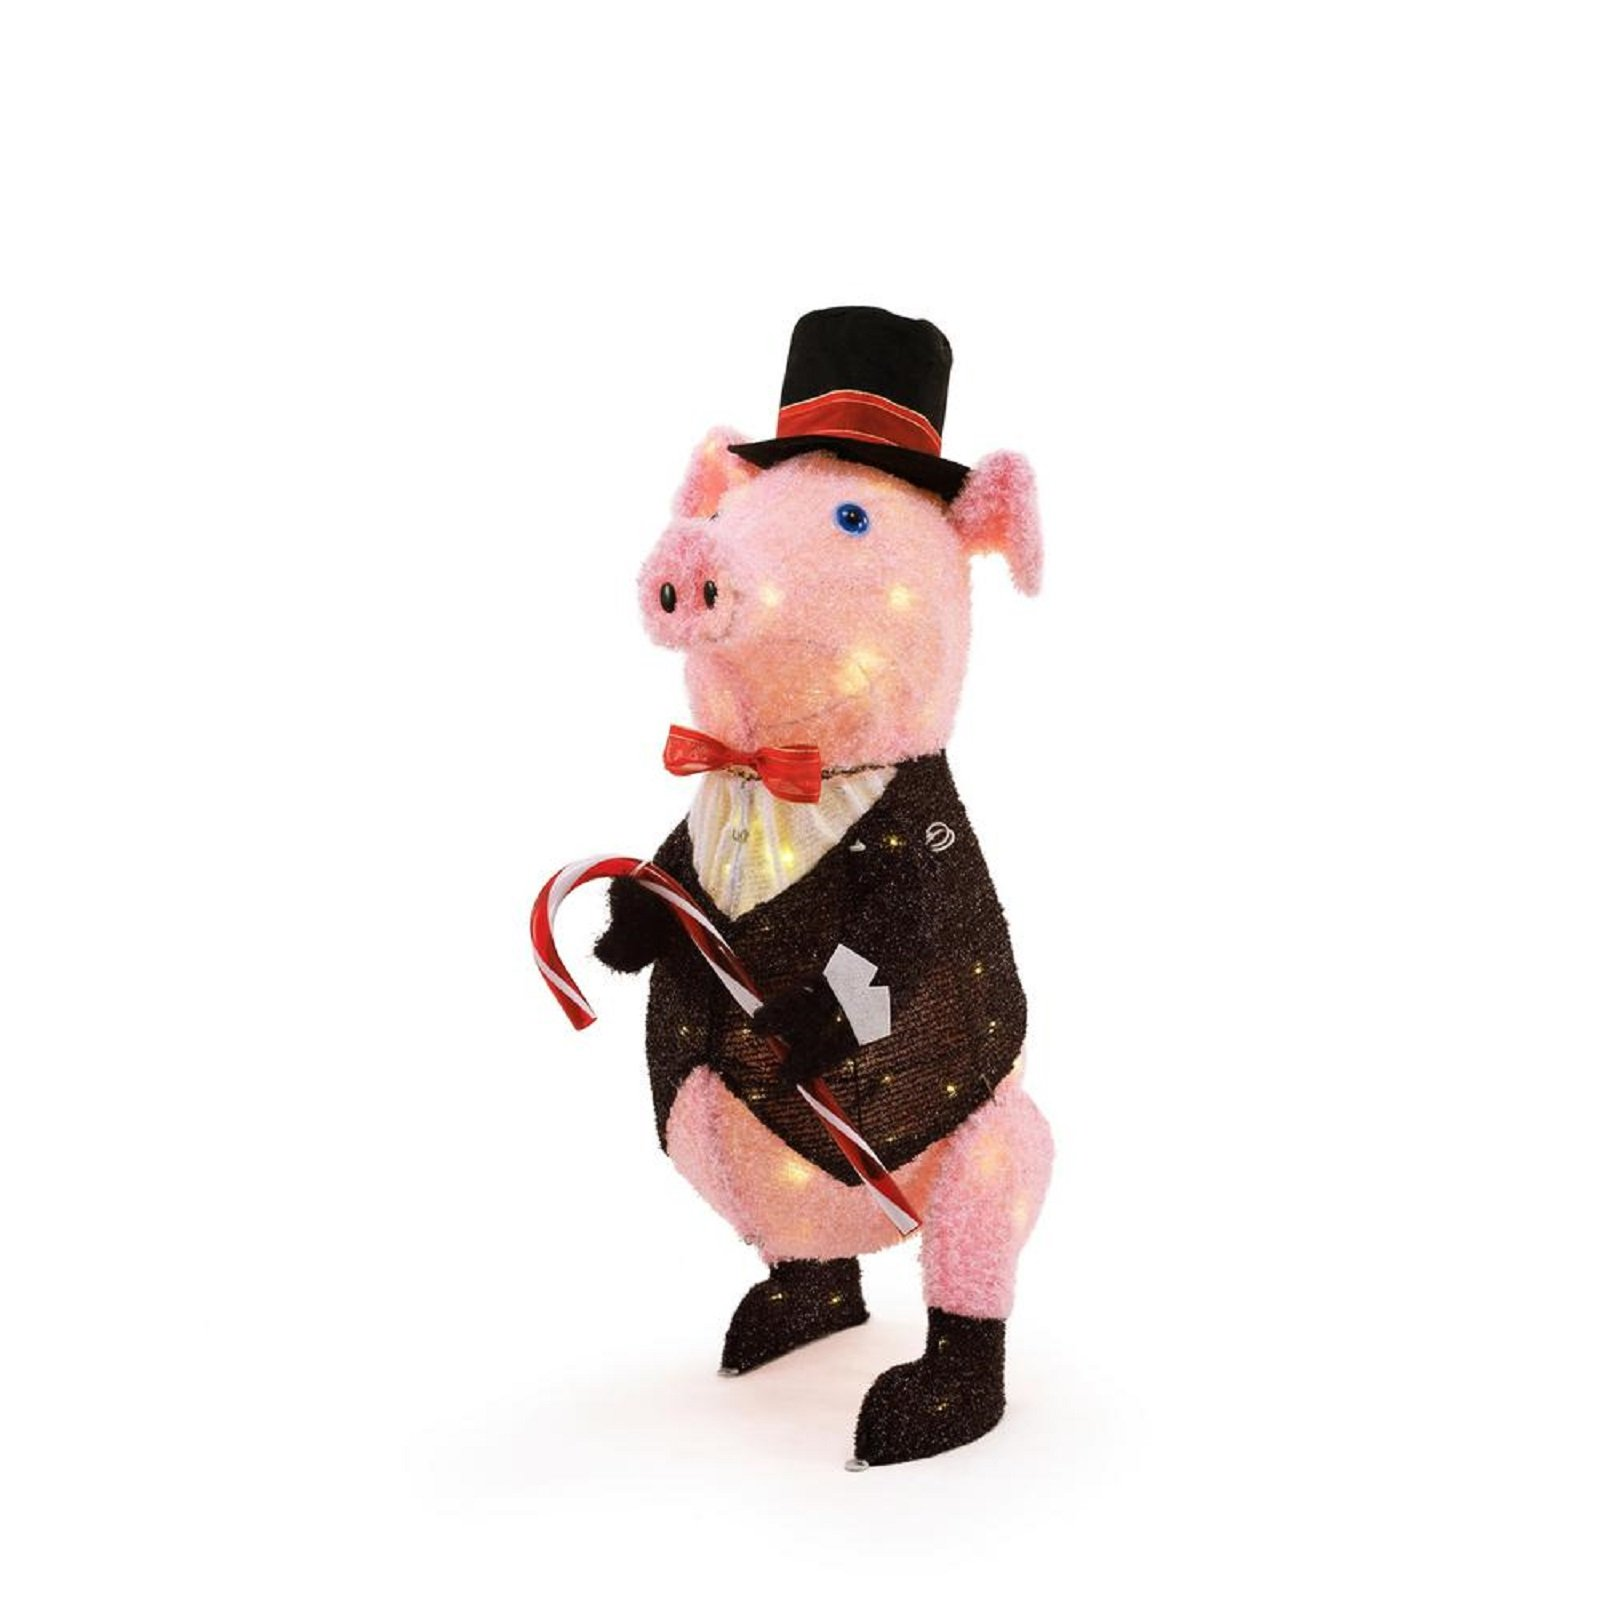 27 Inch New Dapper Pig Lighted Outdoor Christmas Decoration